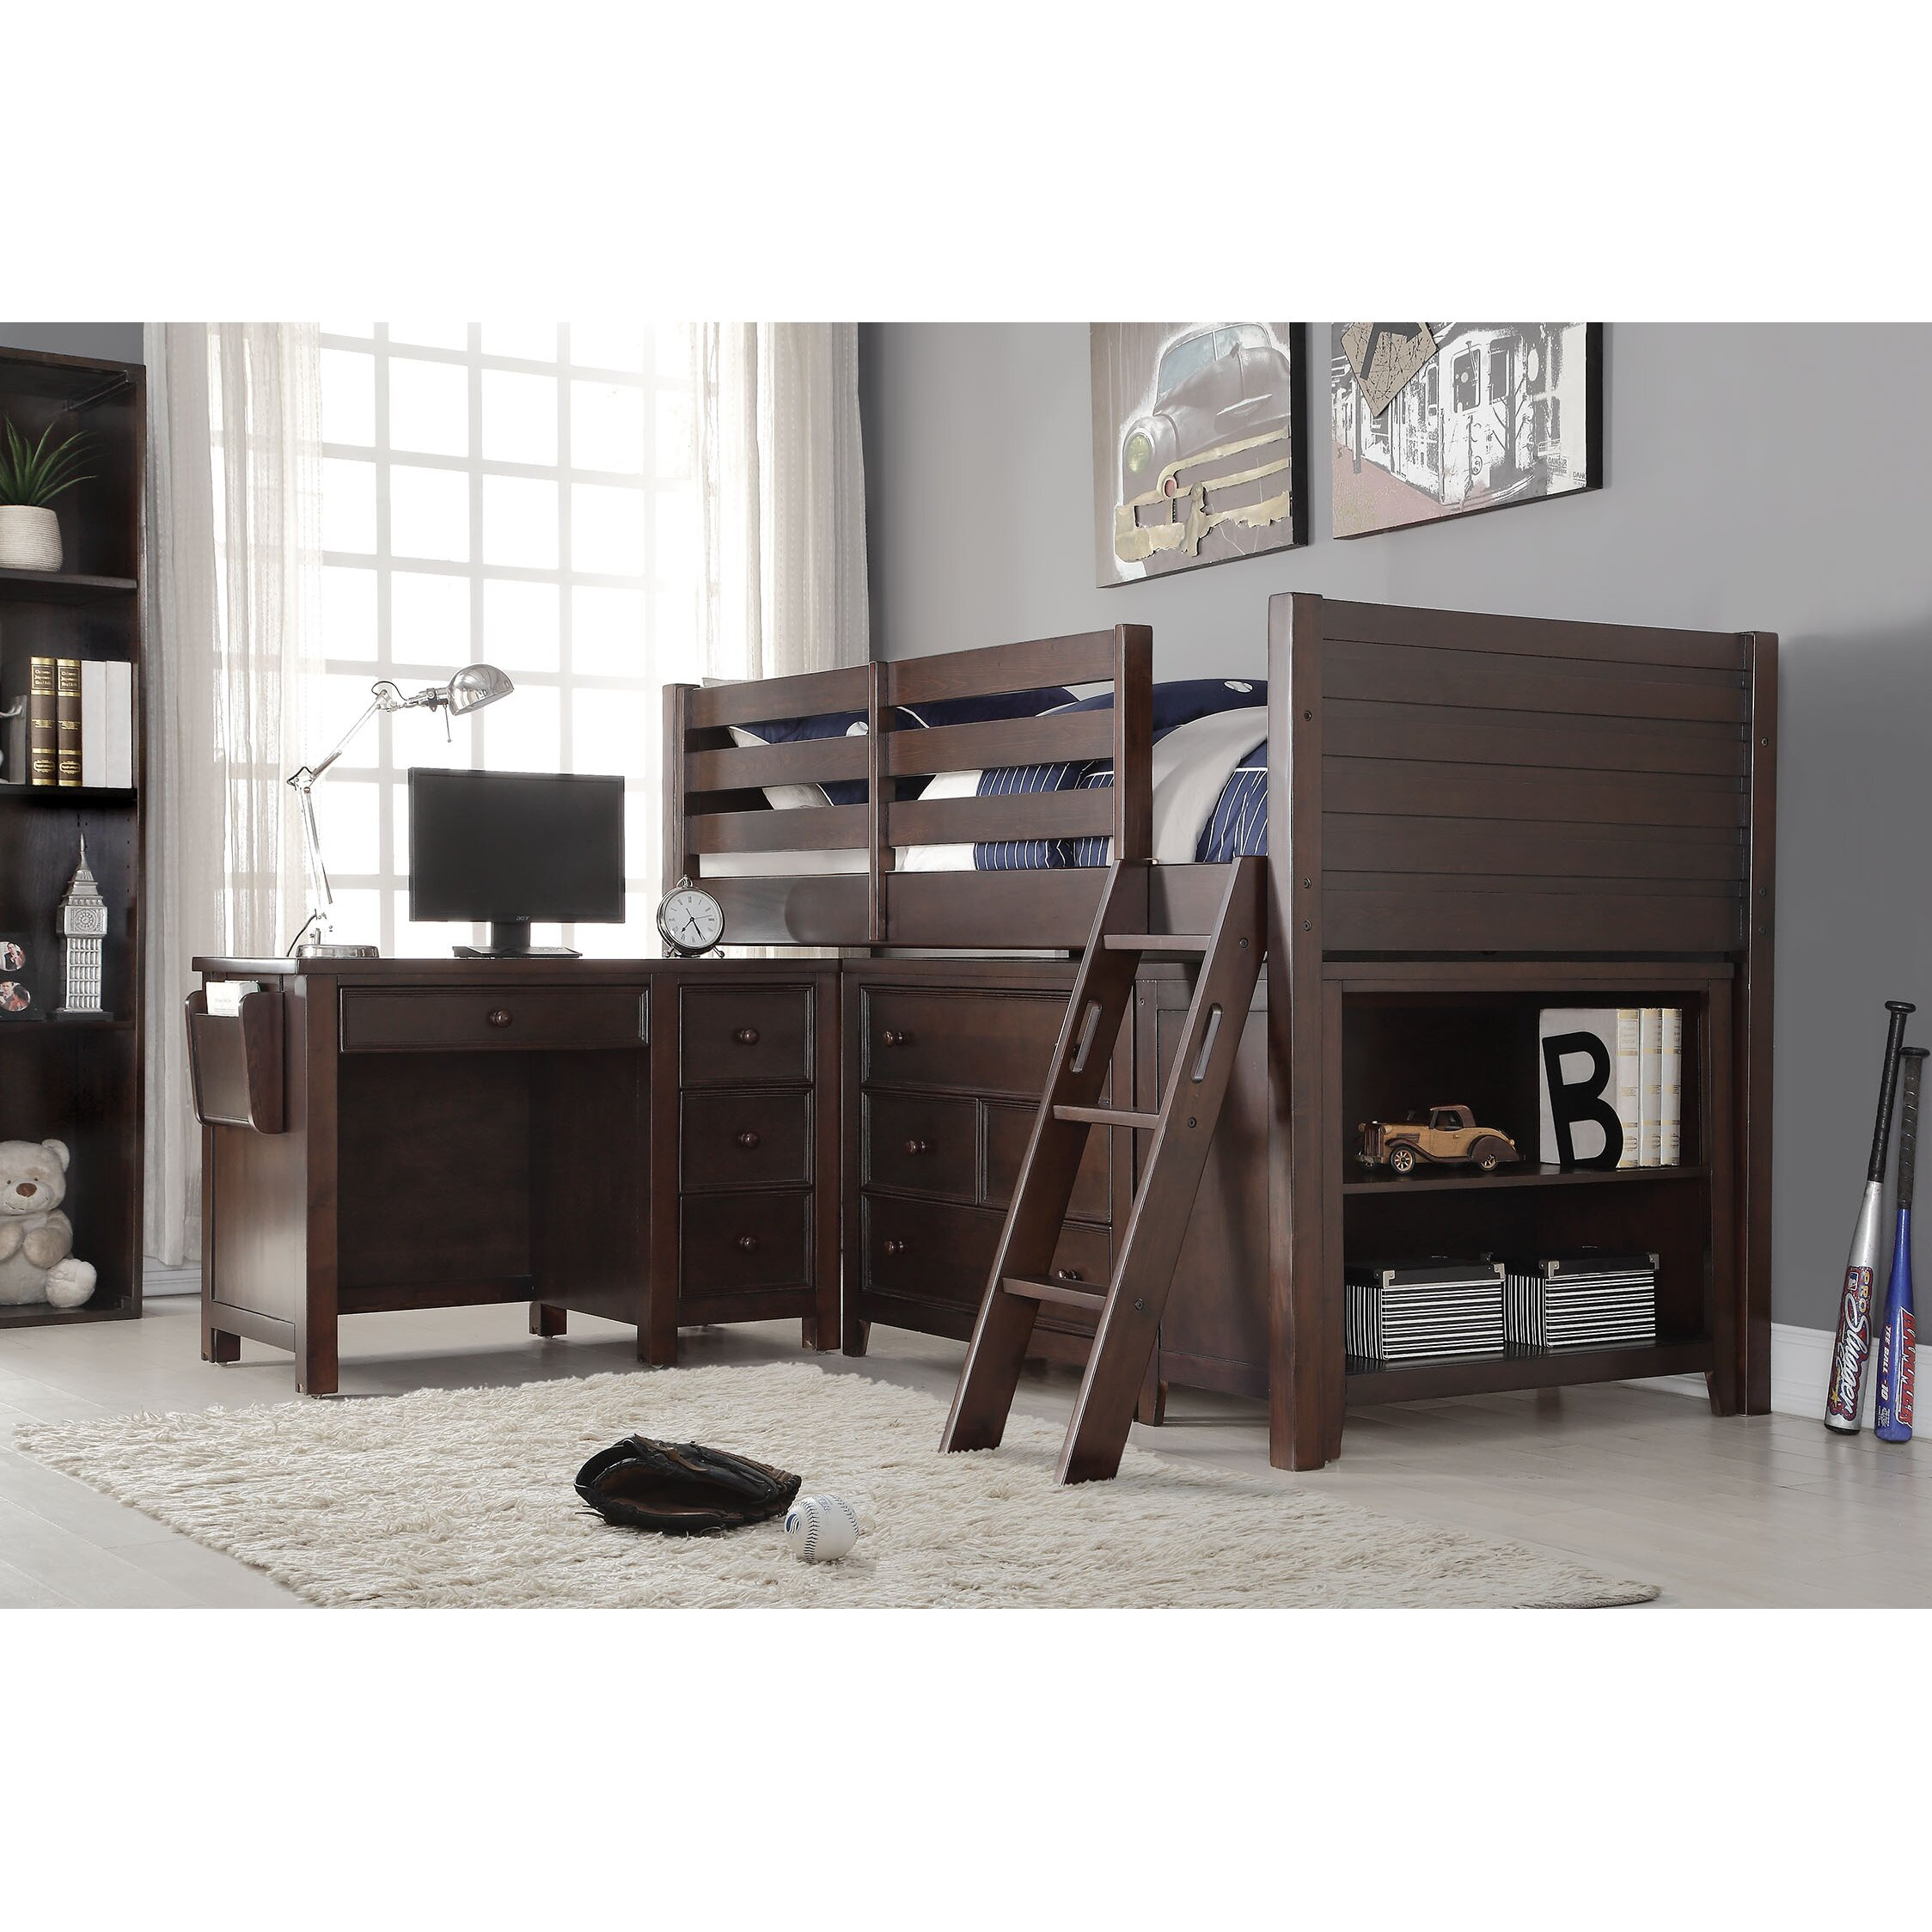 Acme furniture lacey loft 2 piece bedroom set for 2 piece furniture set